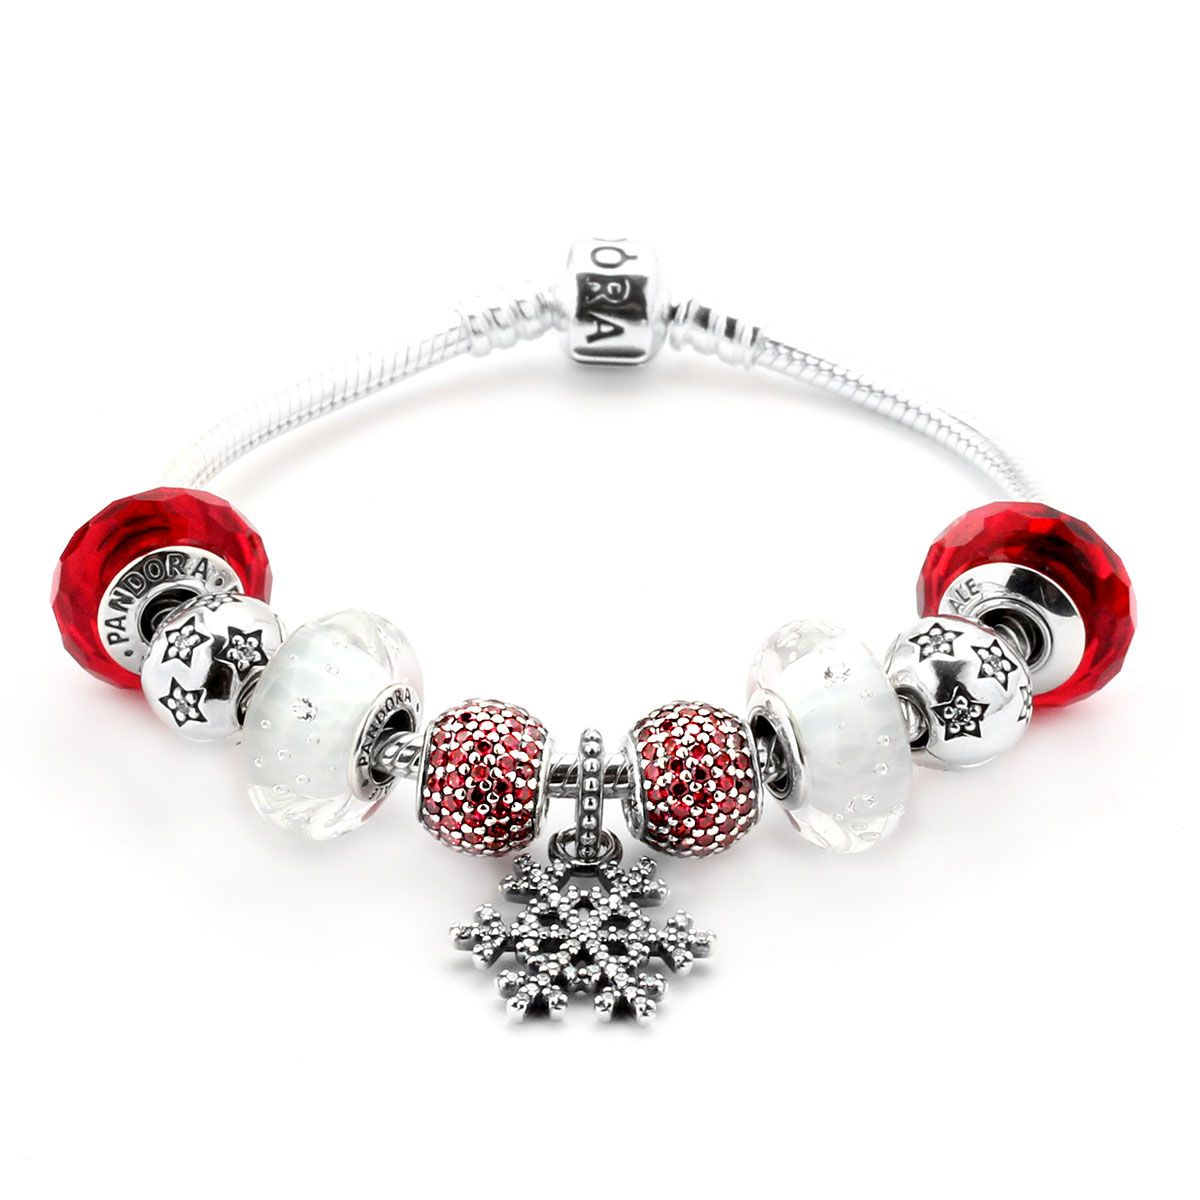 PANDORA Candy Cane Bracelet - Satisfy that sweet tooth with the PANDORA Candy Cane bracelet. A perfect combination of colored CZs and Murano glass, this bracelet embodies everyone's favorite sugary, striped holiday treat!